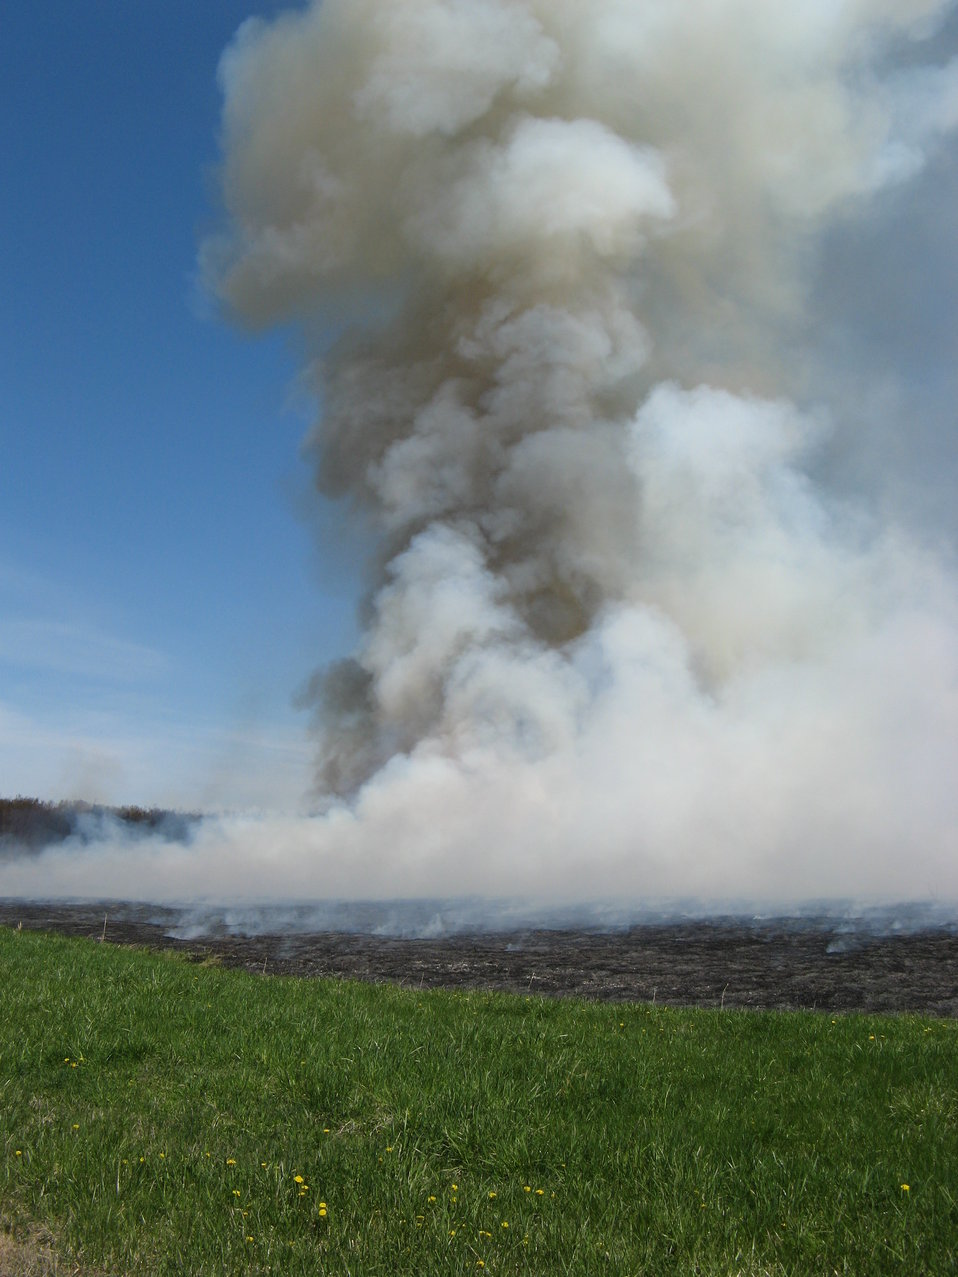 Smoke plume from a controlled burn at Iroquois National Wildlife Refuge